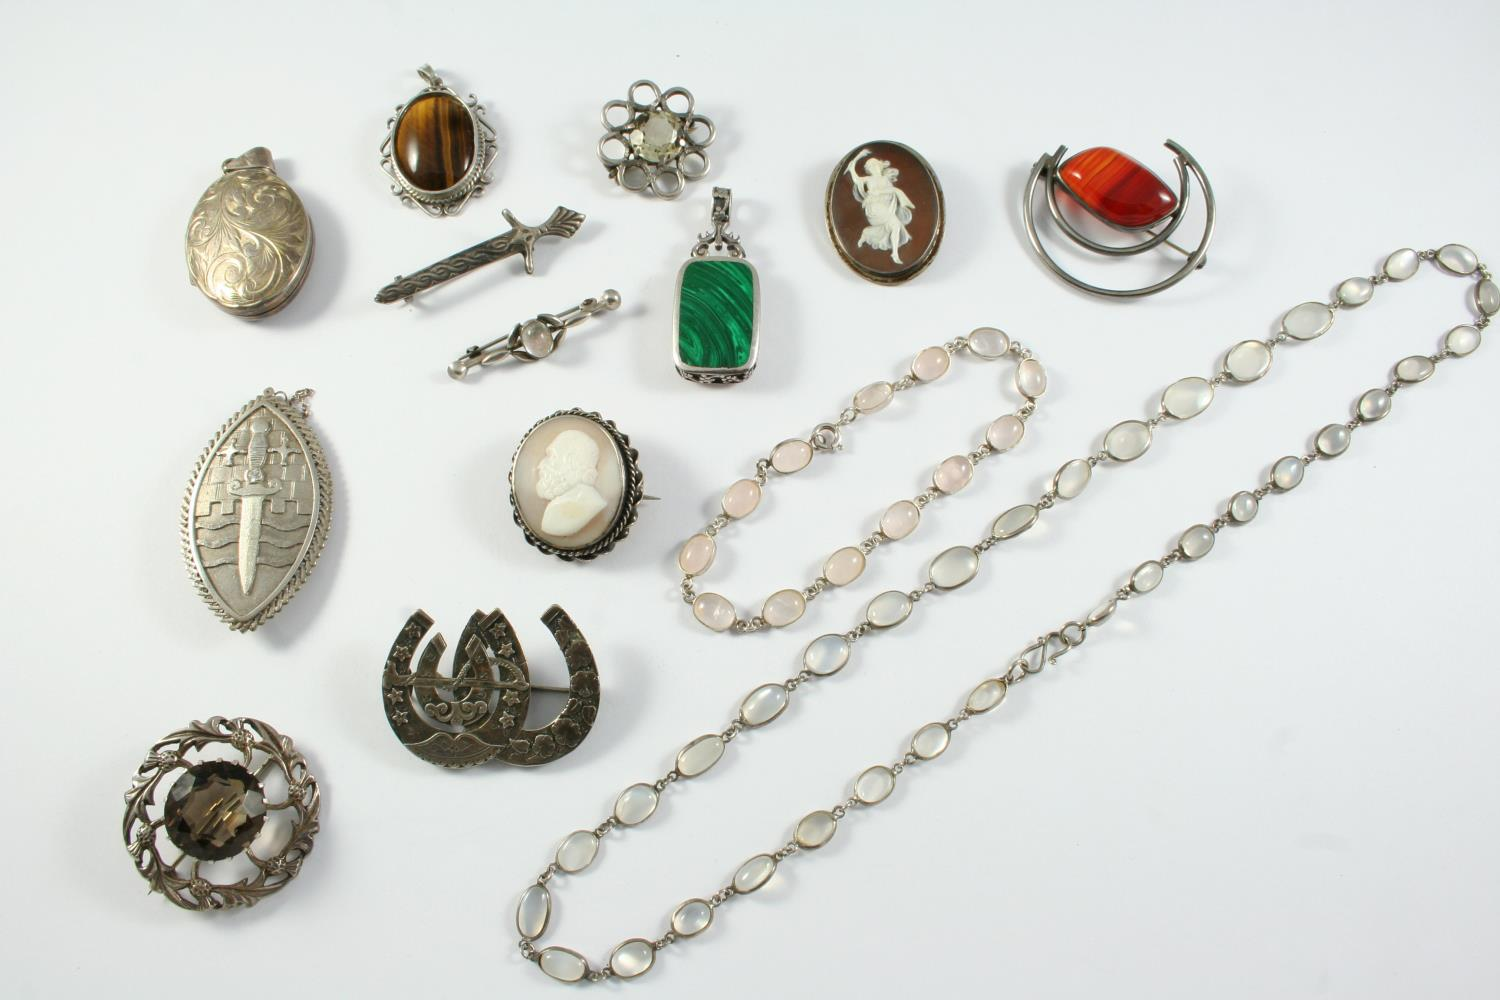 A QUANTITY OF JEWELLERY including a moonstone spectecle necklace and bracelet, assorted silver